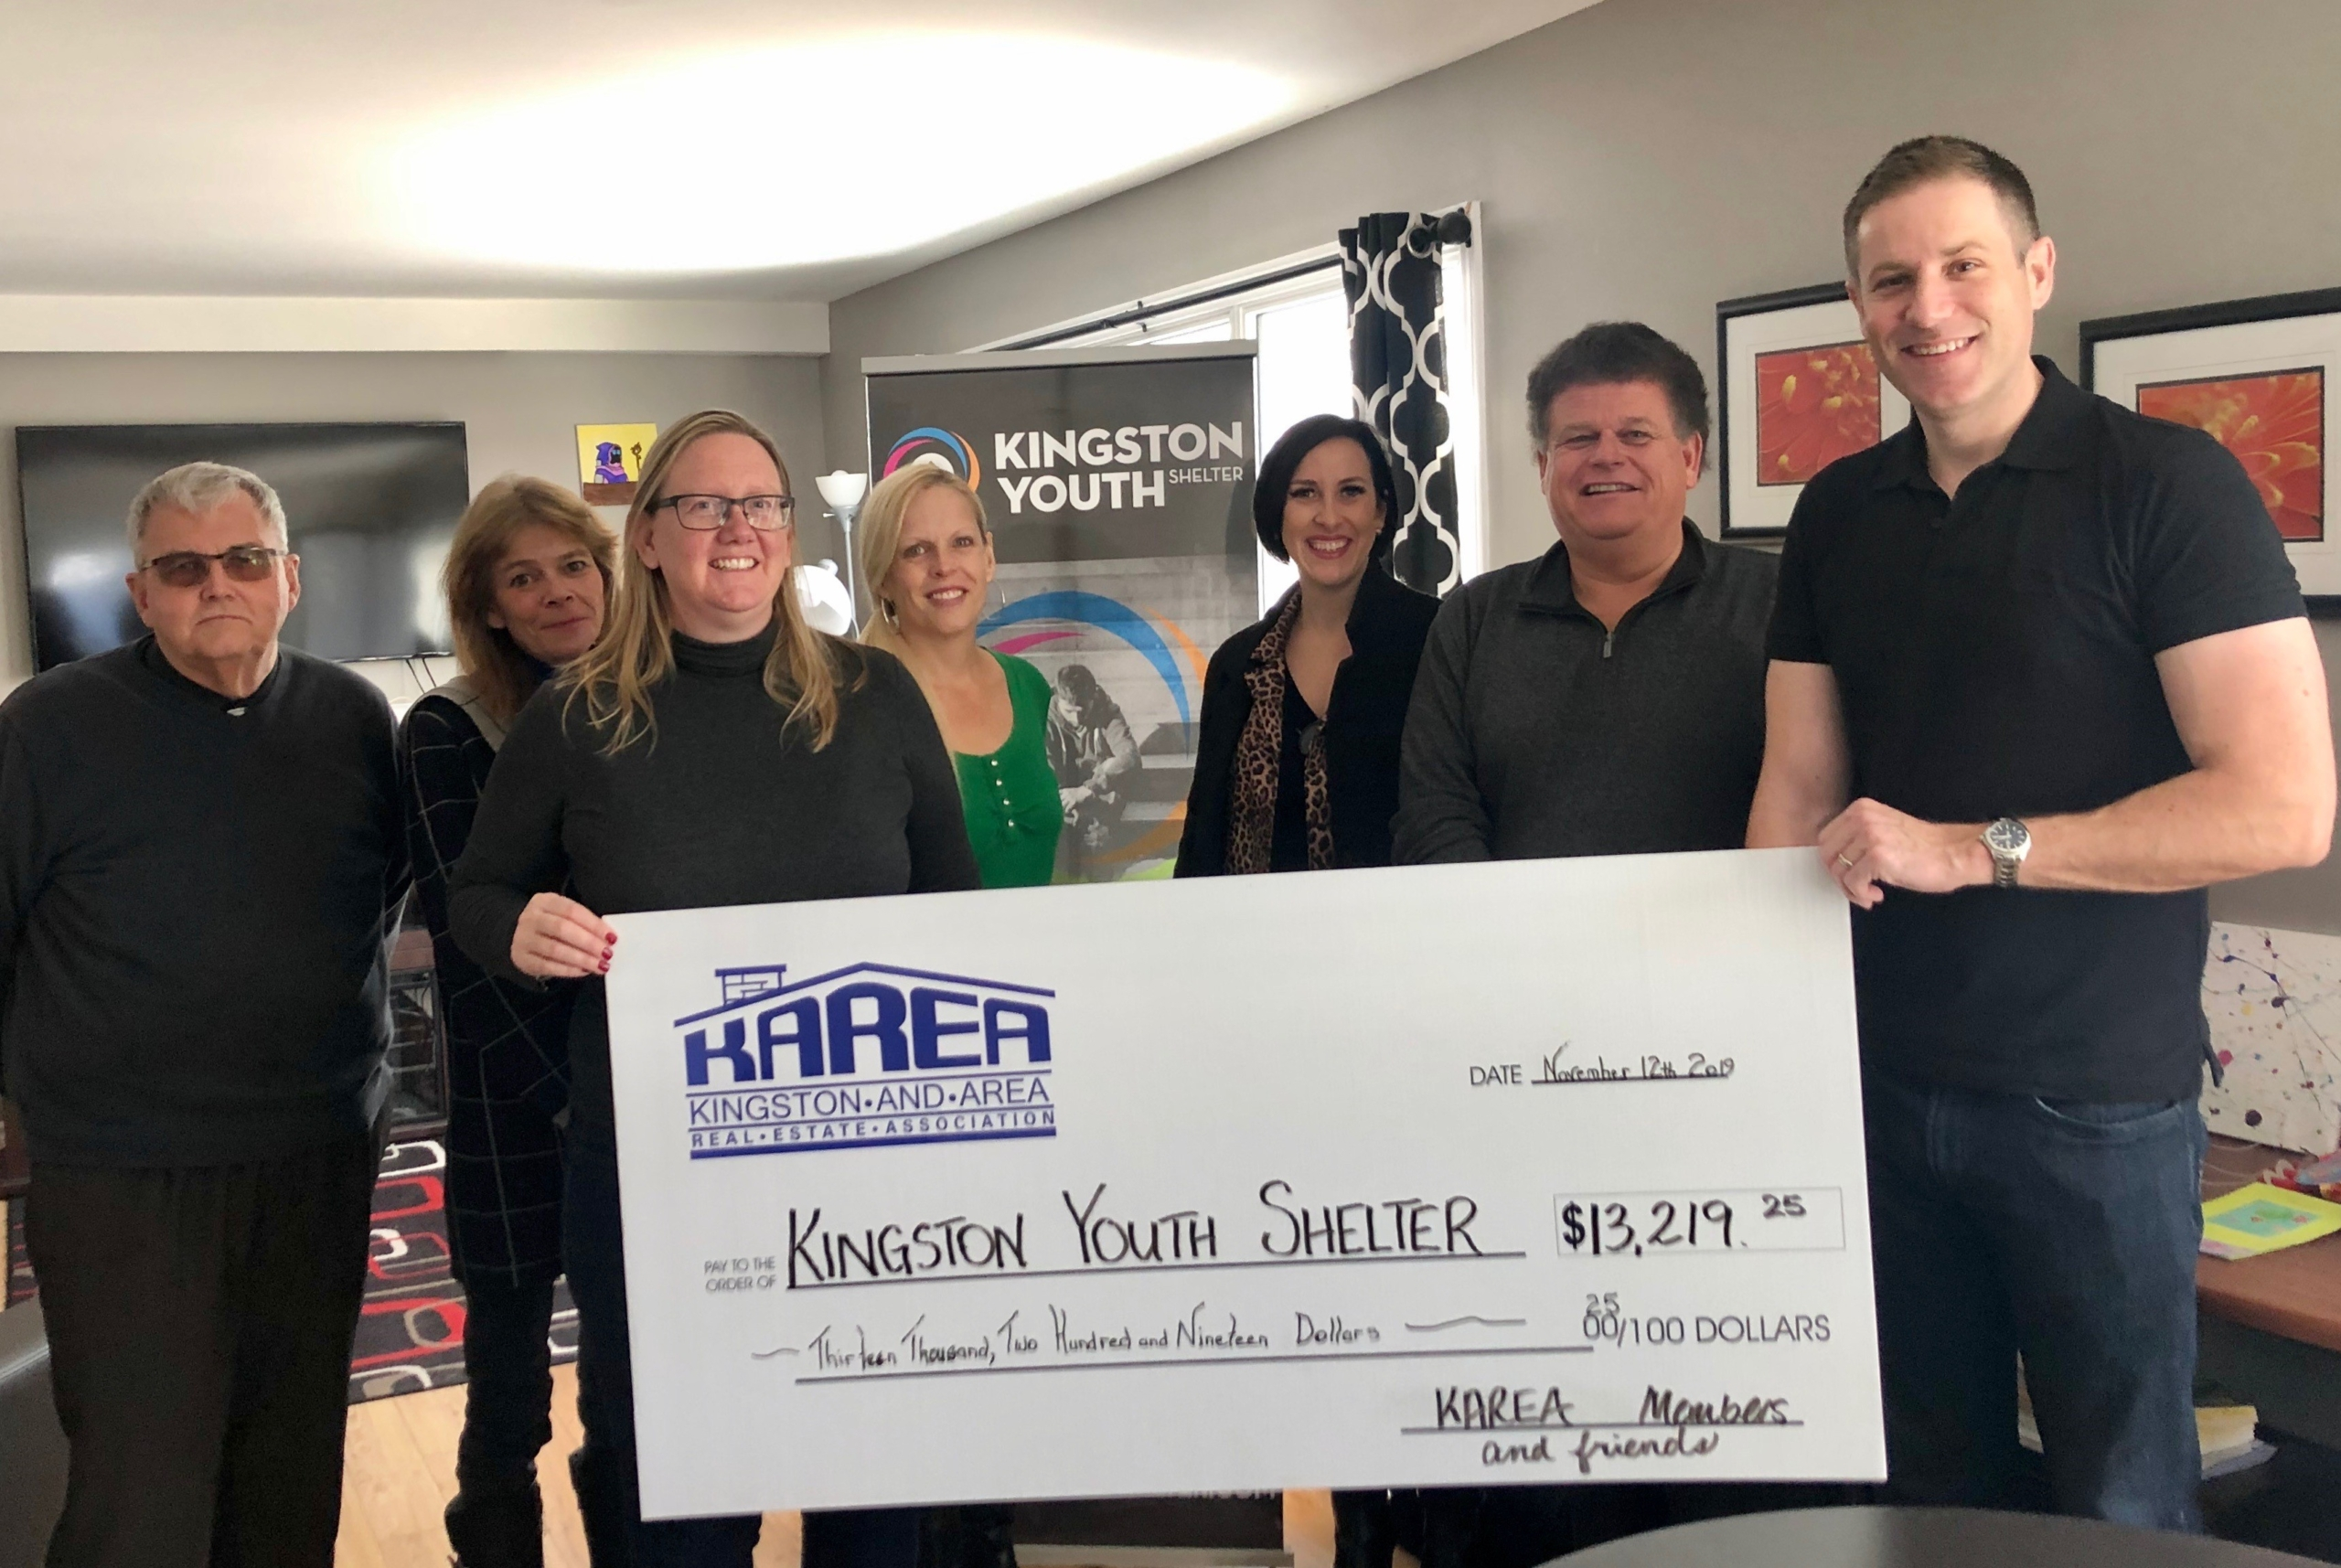 Cheque Presentation to Kingston Youth Shelter